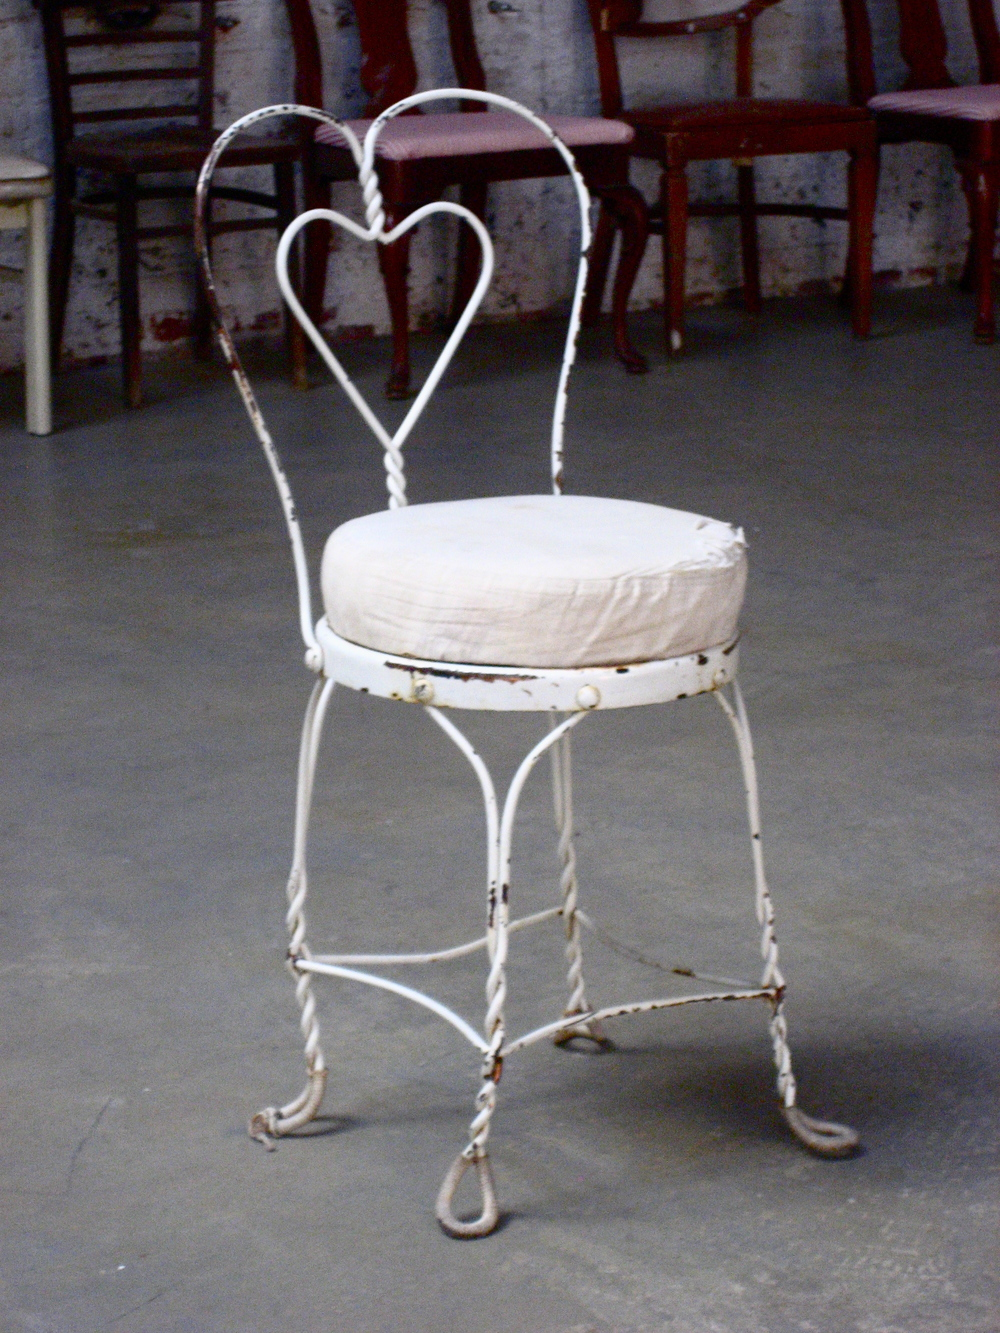 Iron Heart Chair $50